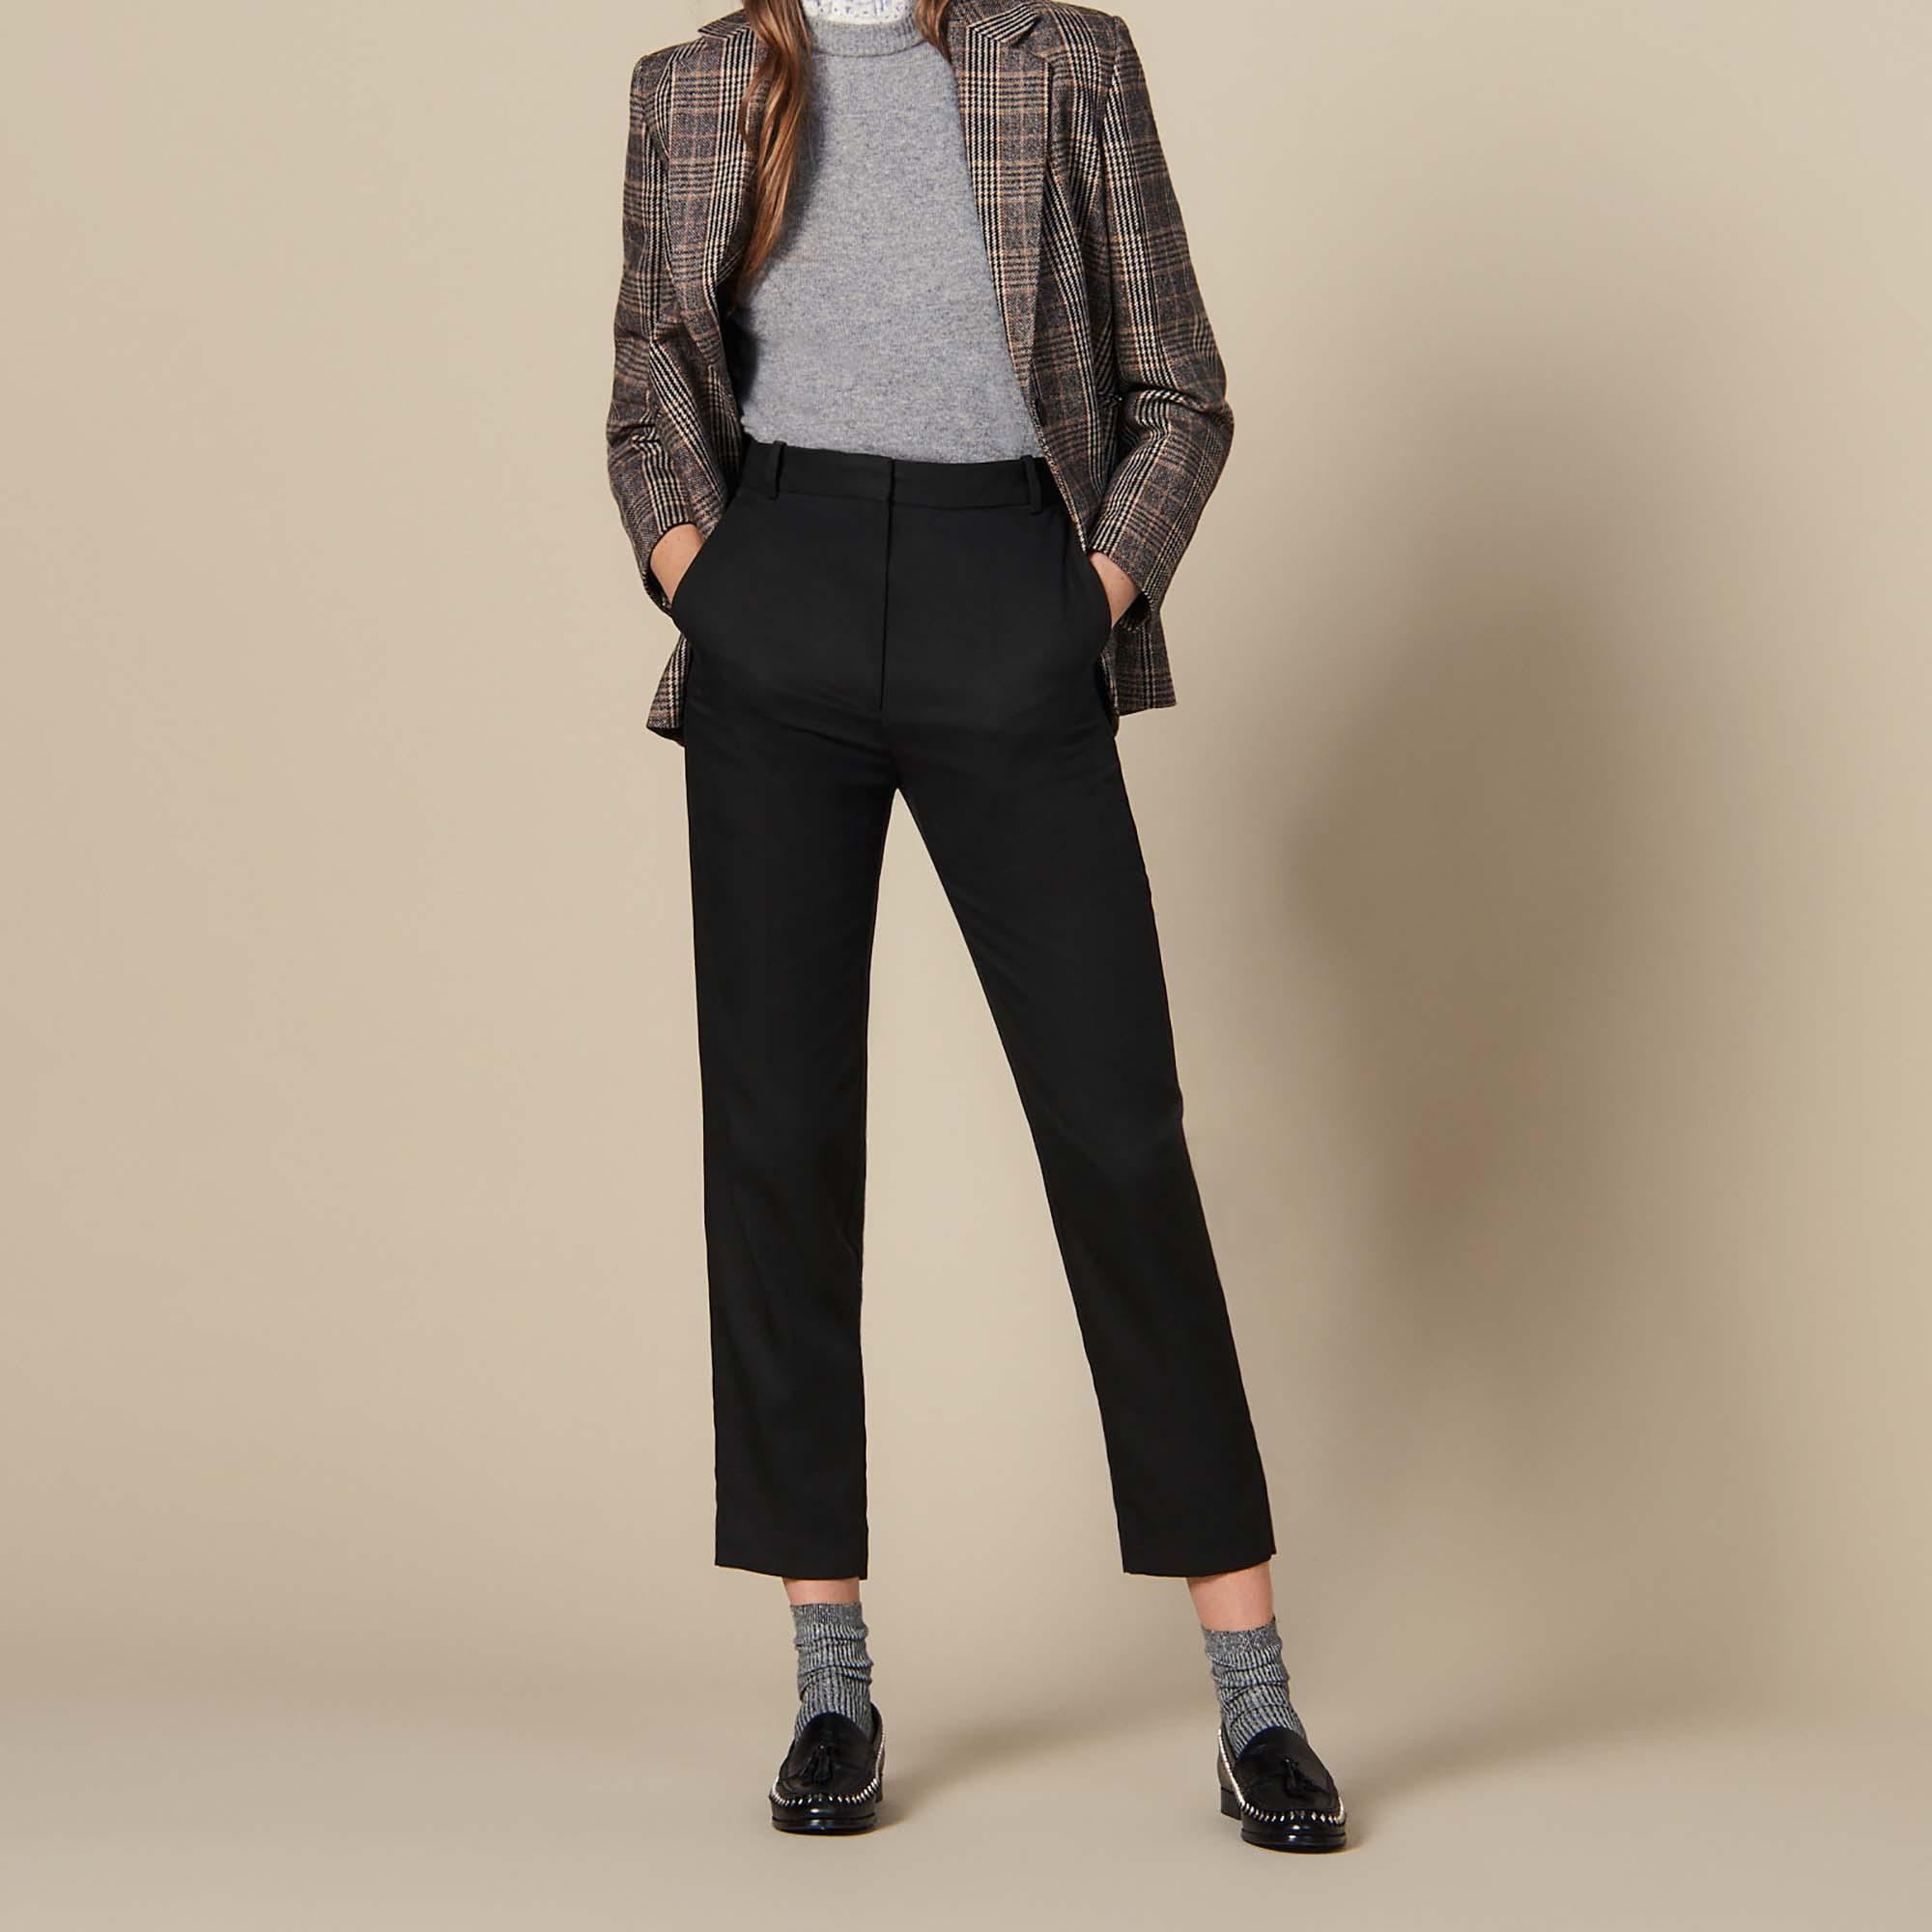 Fitted pants with pin tuck pleats